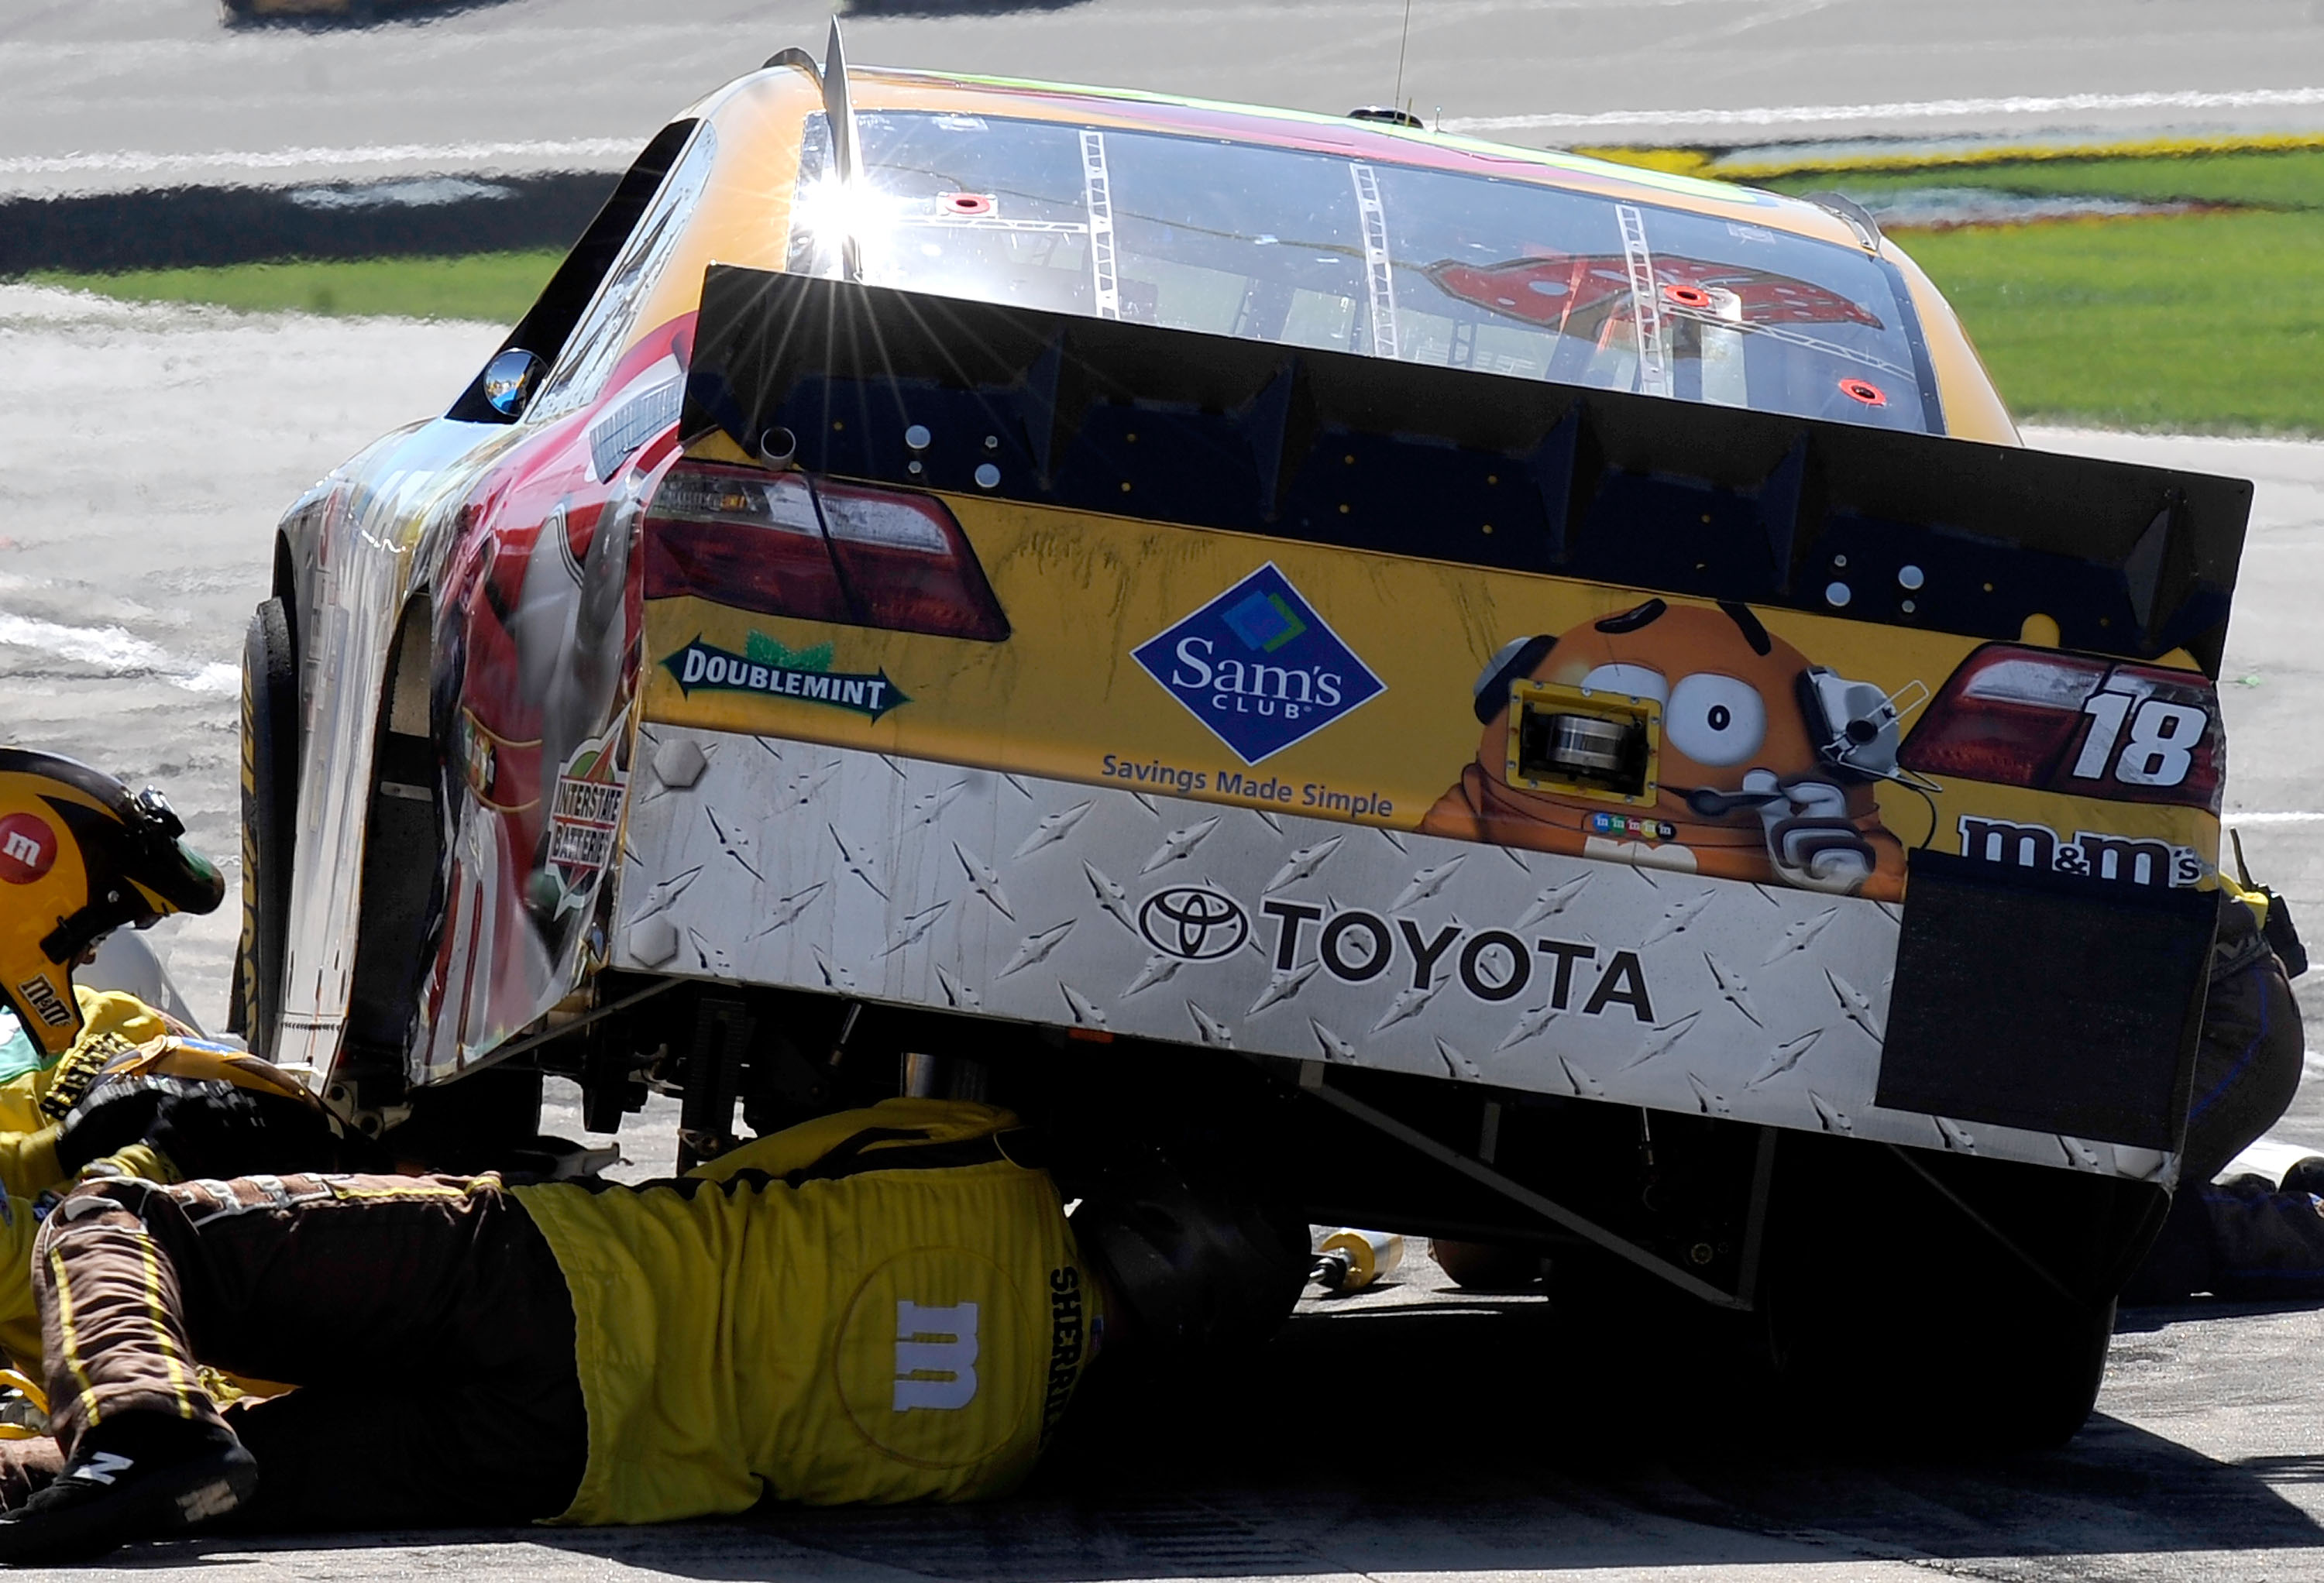 KANSAS CITY, KS - OCTOBER 03:  Crew members work on the car of Kyle Busch, driver of the #18 M&M's Toyota, during the NASCAR Sprint Cup Series Price Chopper 400 on October 3, 2010 in Kansas City, Kansas.  (Photo by Rusty Jarrett/Getty Images for NASCAR)